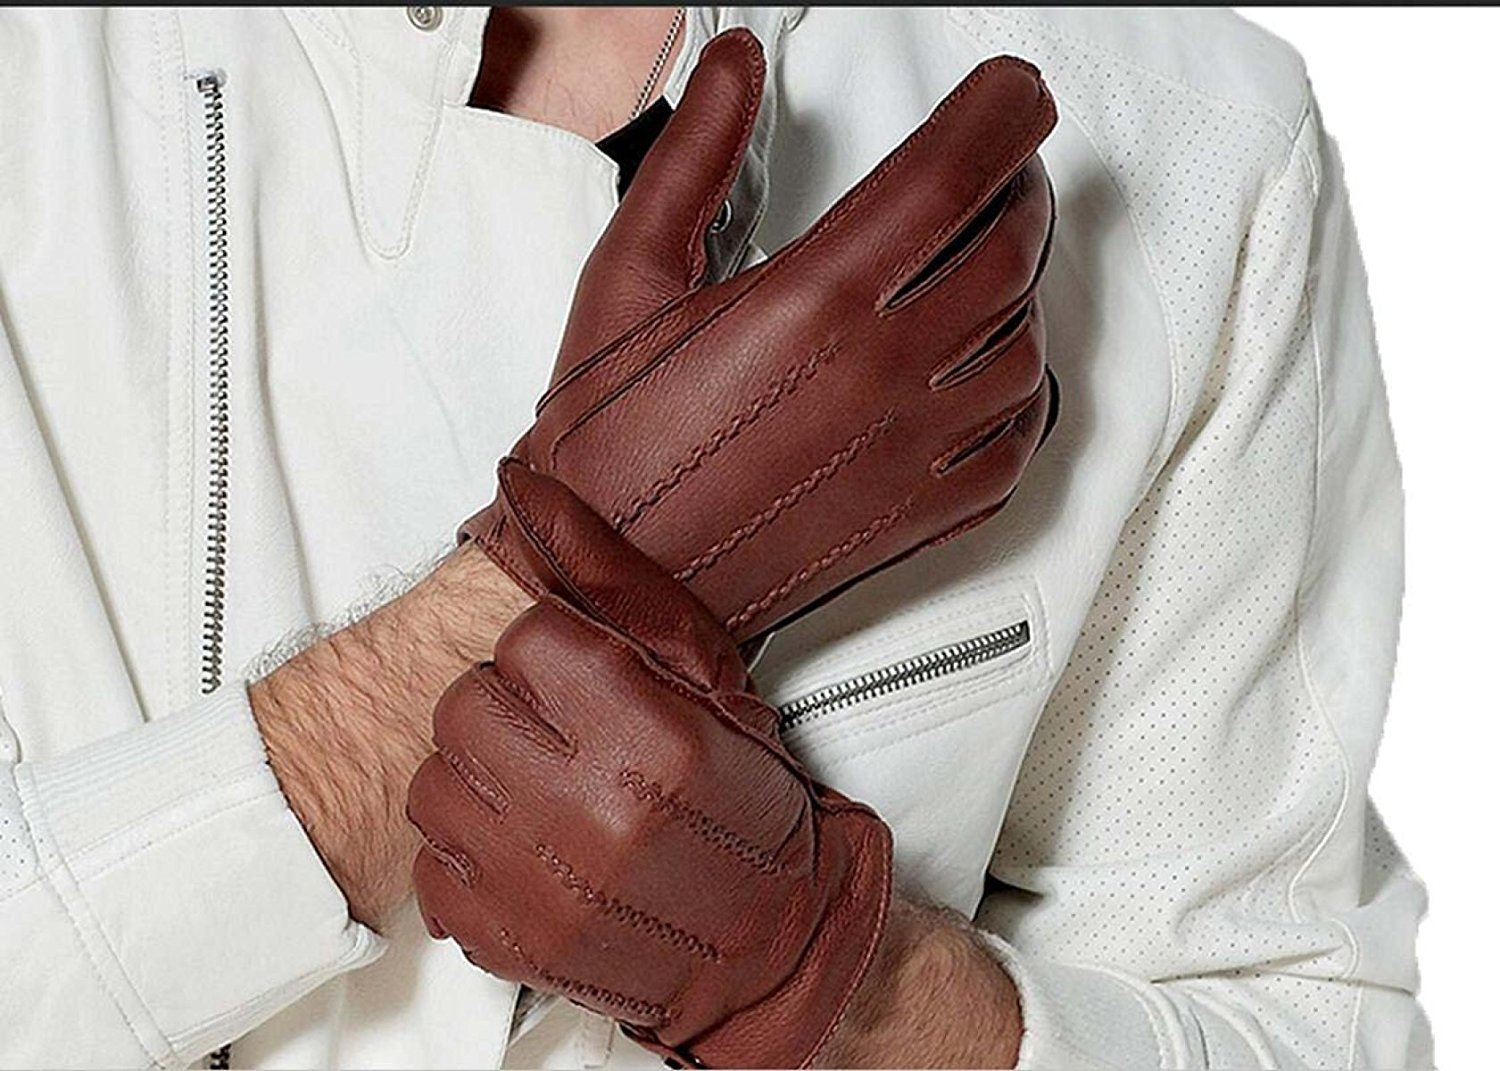 DIDIDD Womens Unlined Deerskin Leather Driving Gloves Short Thicker Waterproof Winter Warm 3 Colors,Brown,Large